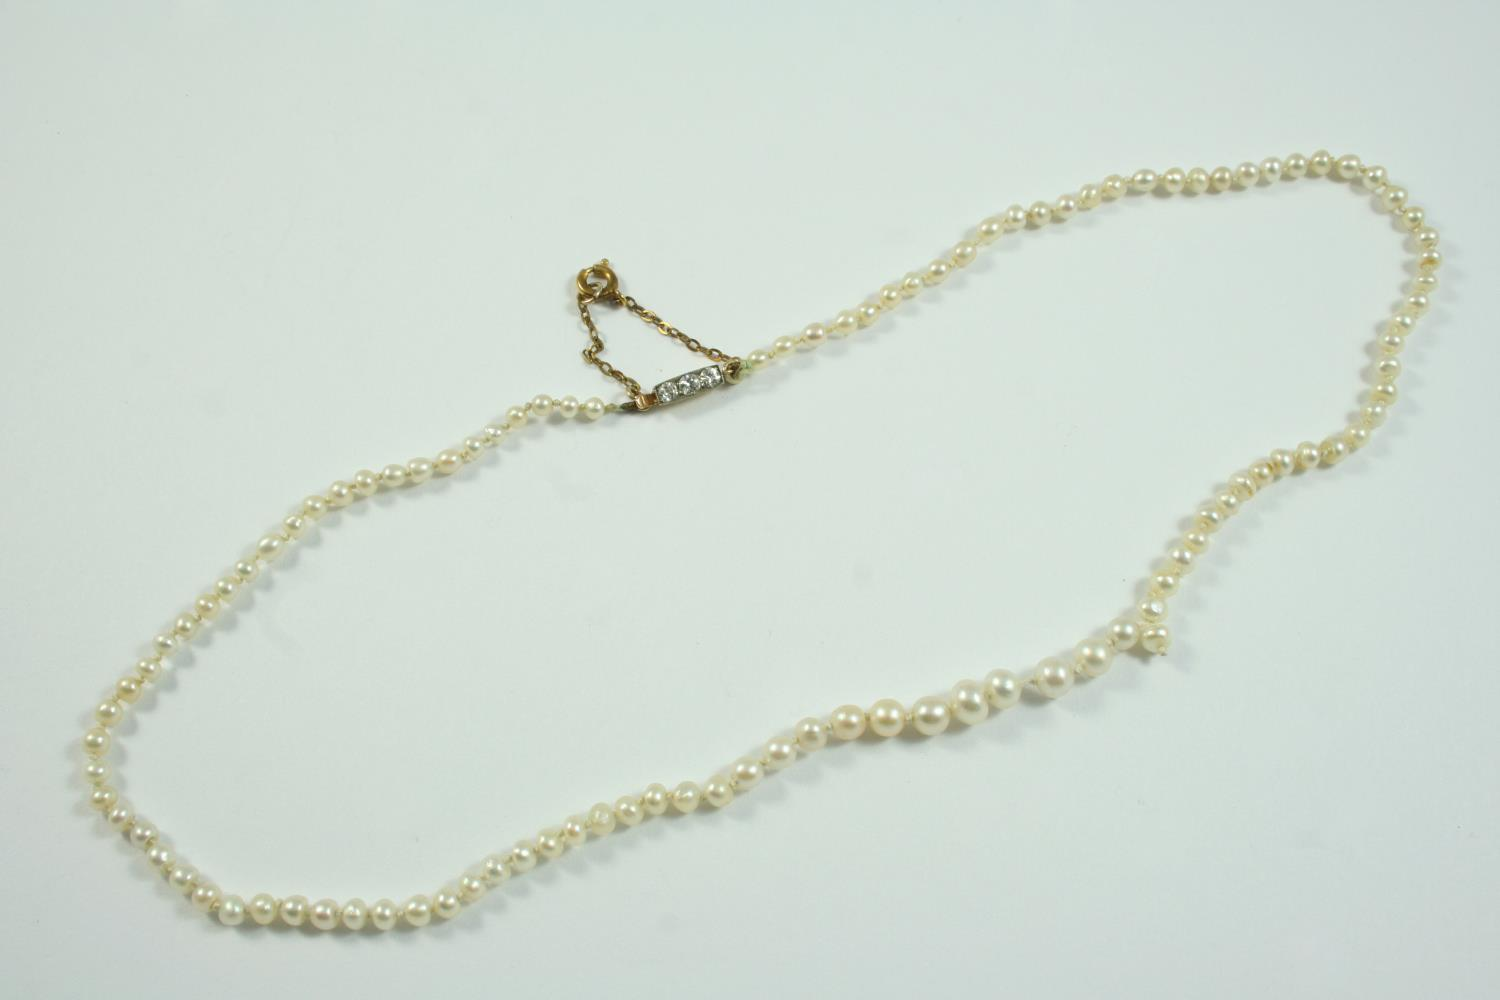 A SINGLE ROW GRADUATED NATURAL PEARL NECKLACE the pearls graduate to a rectangular-shaped clasp